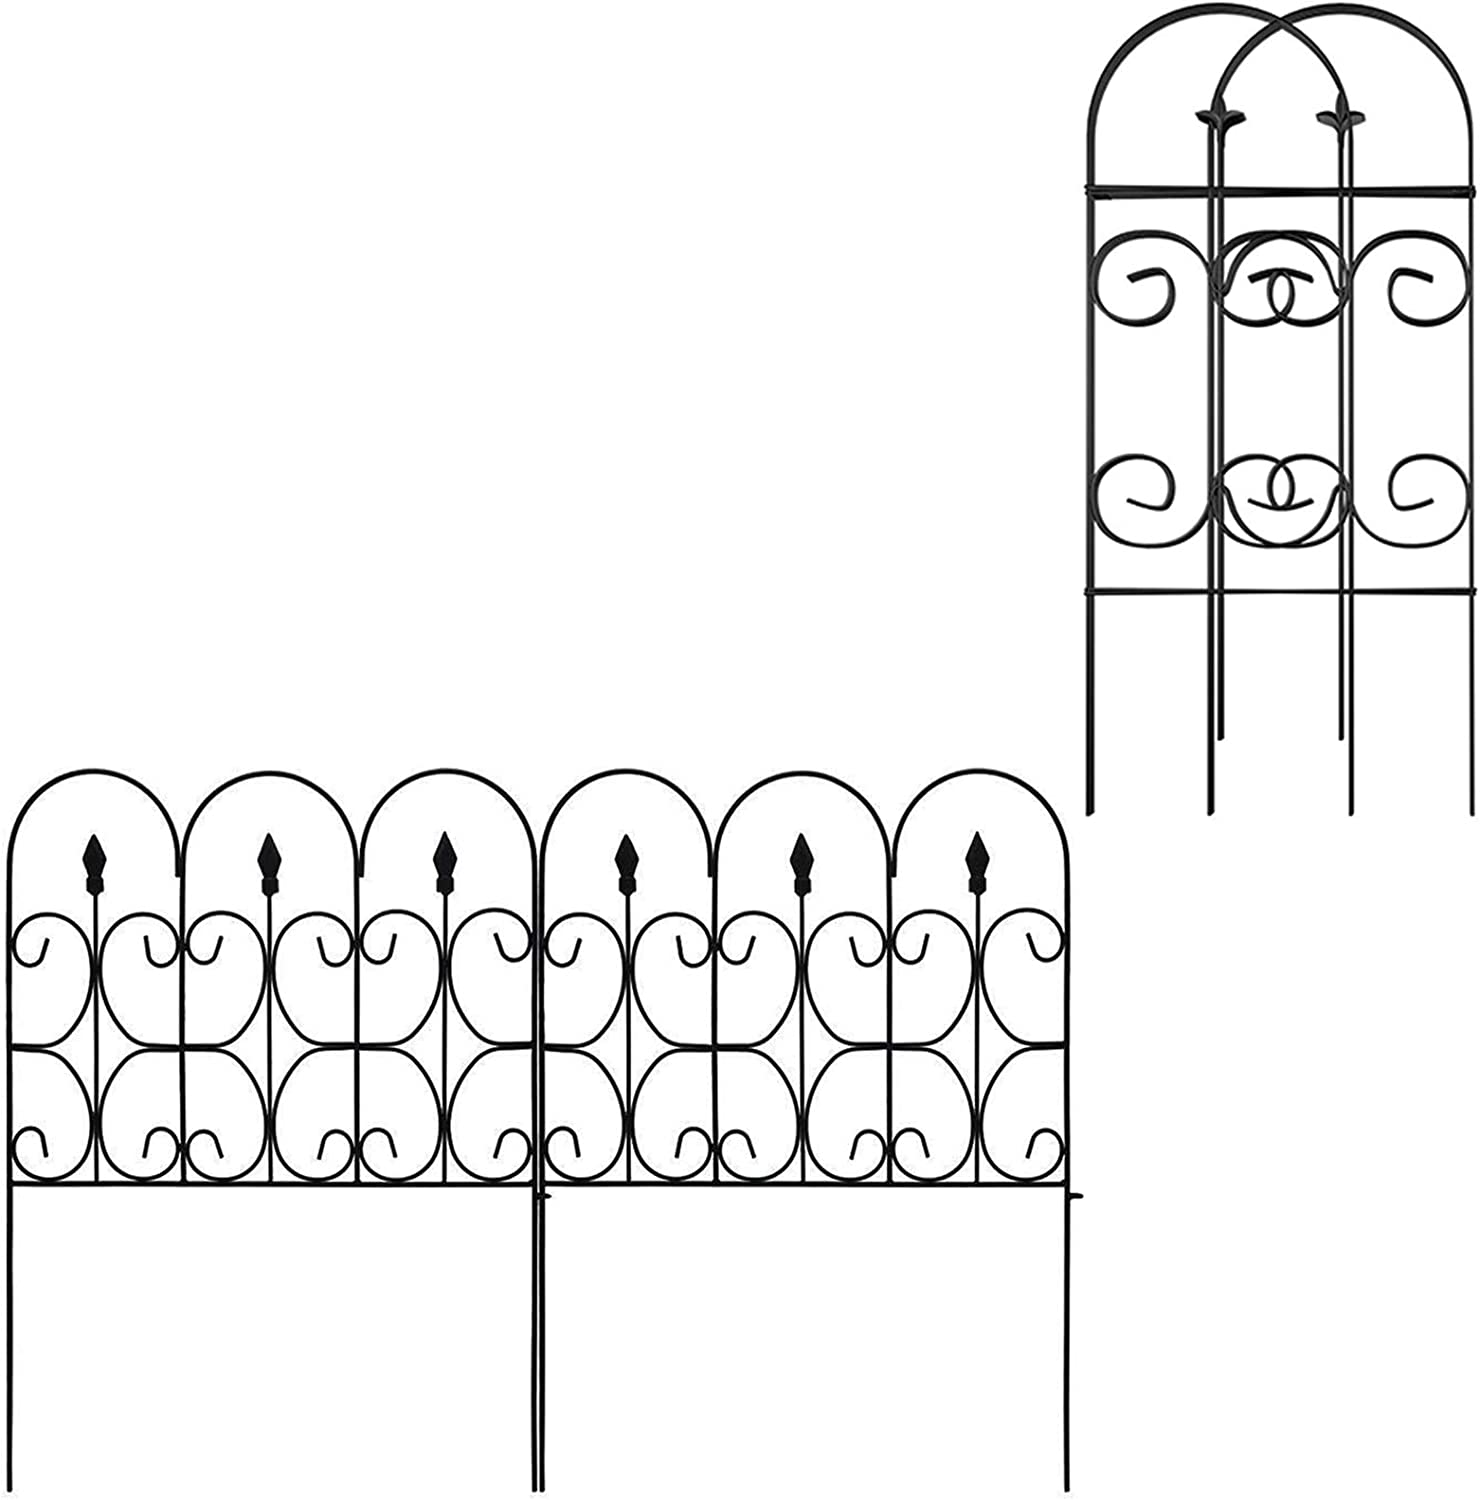 Amagabeli Garden Fence 32inx10ft Bundle Garden Fence 32inx10ft